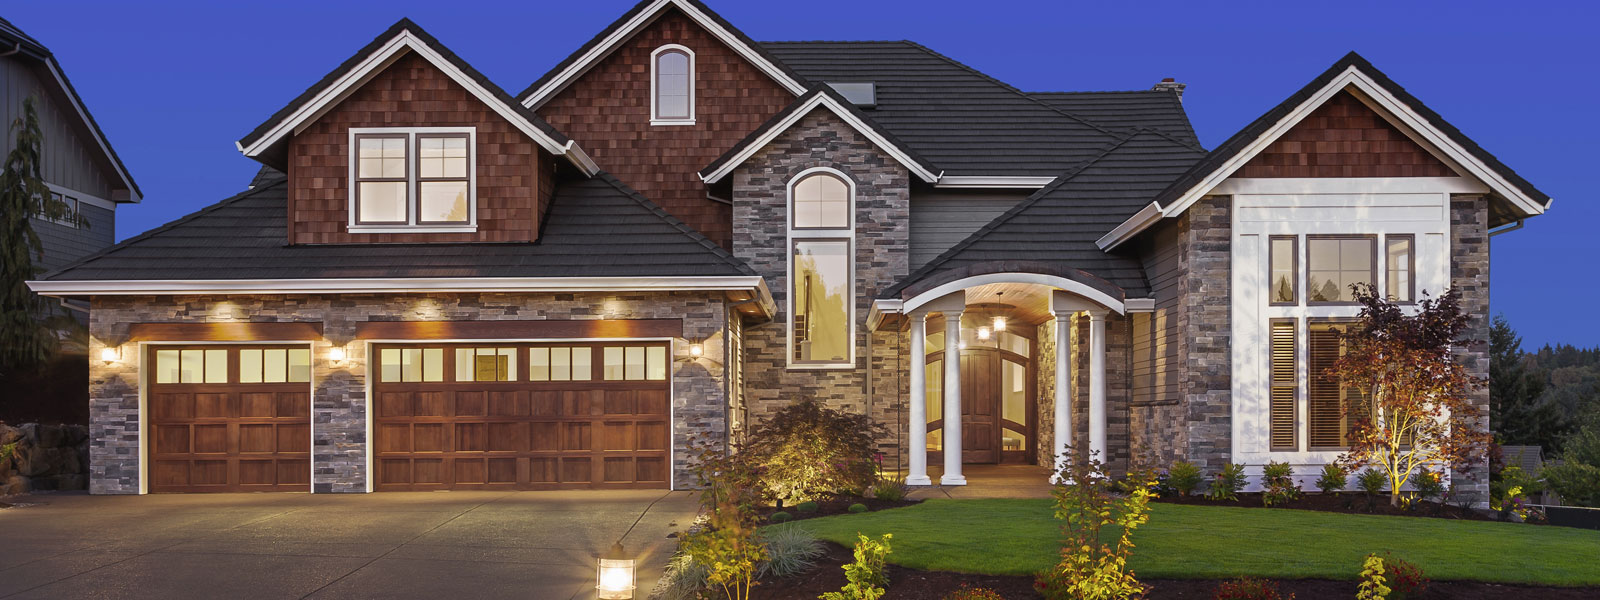 how to find open houses in area